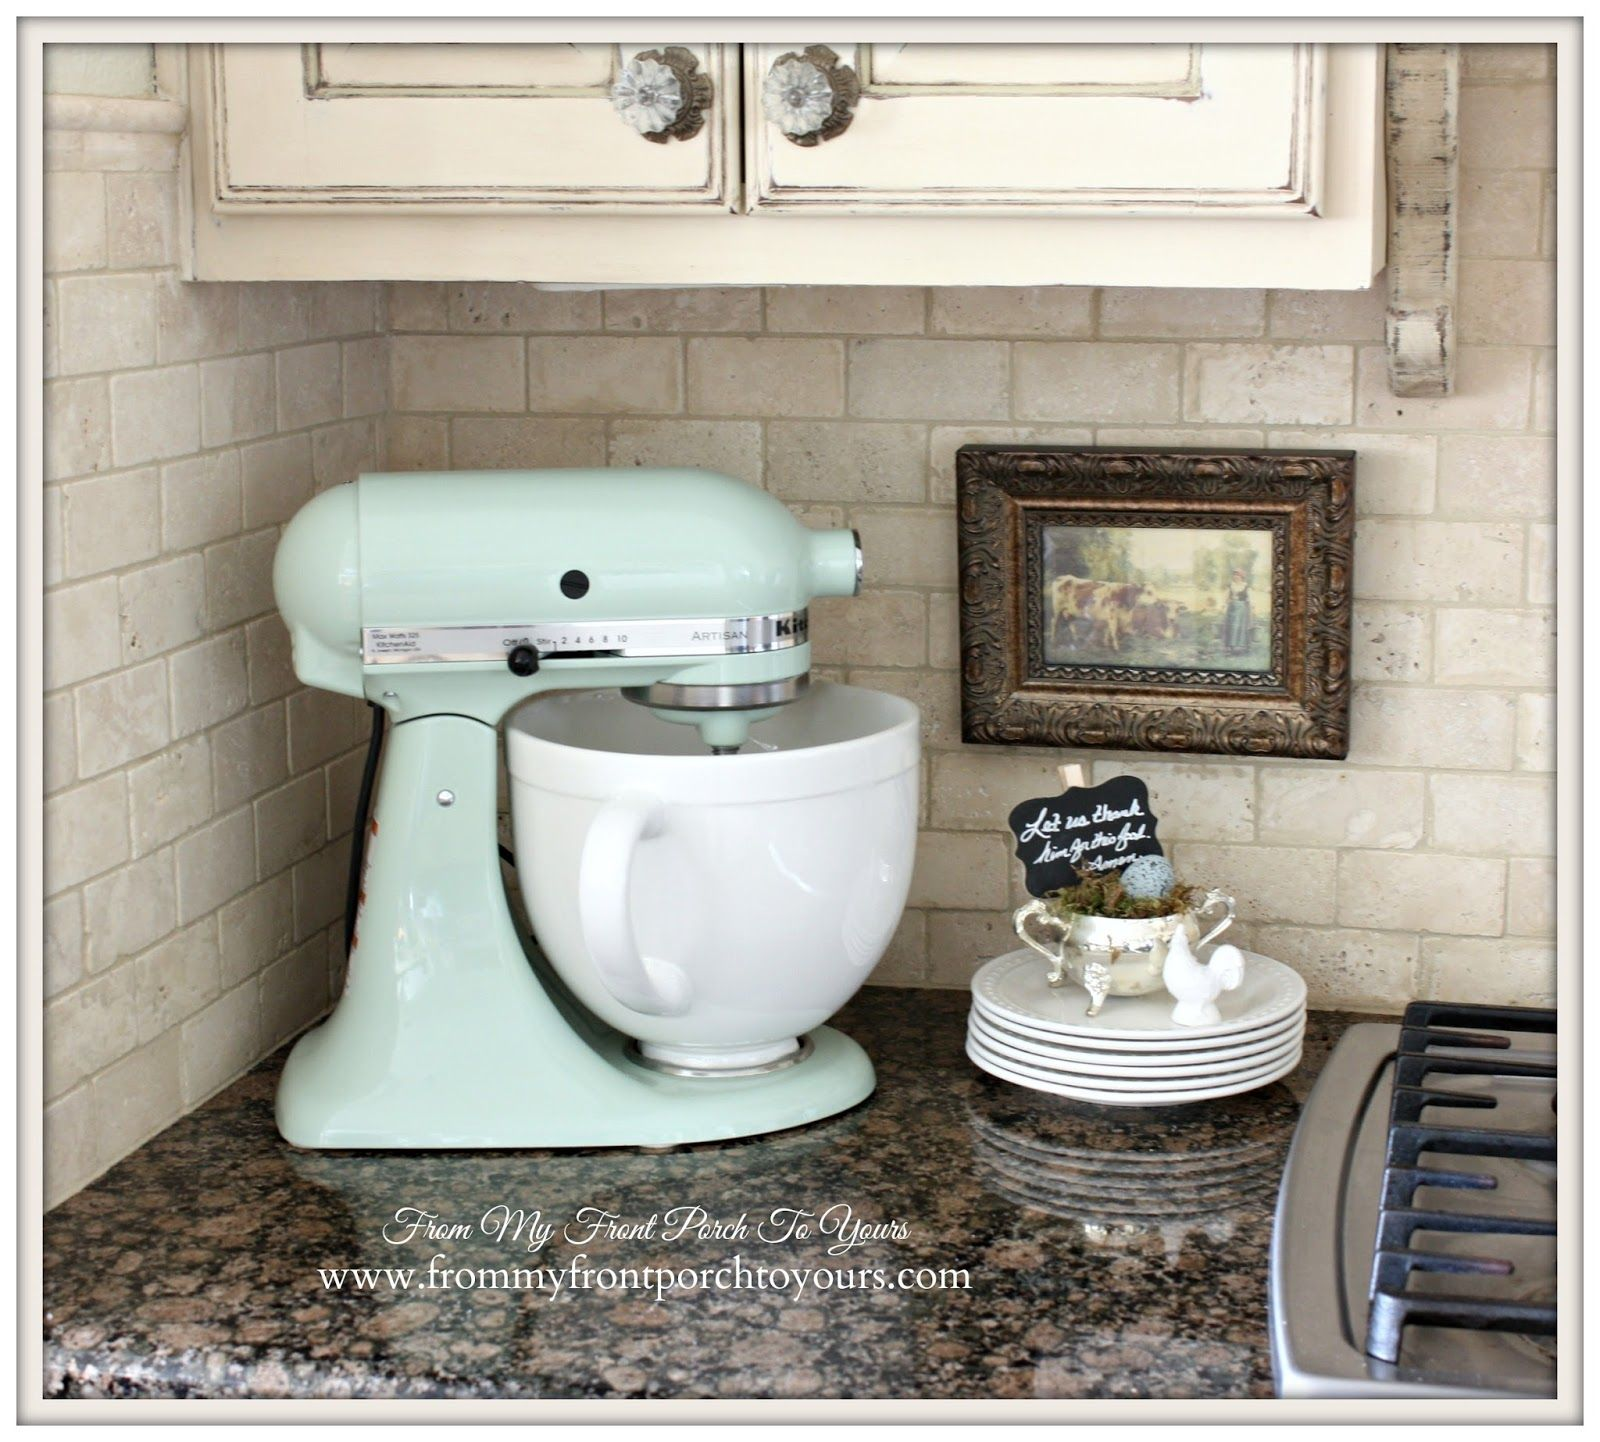 French Farmhouse Kitchen Sources | Kitchenaid mixer, French ...